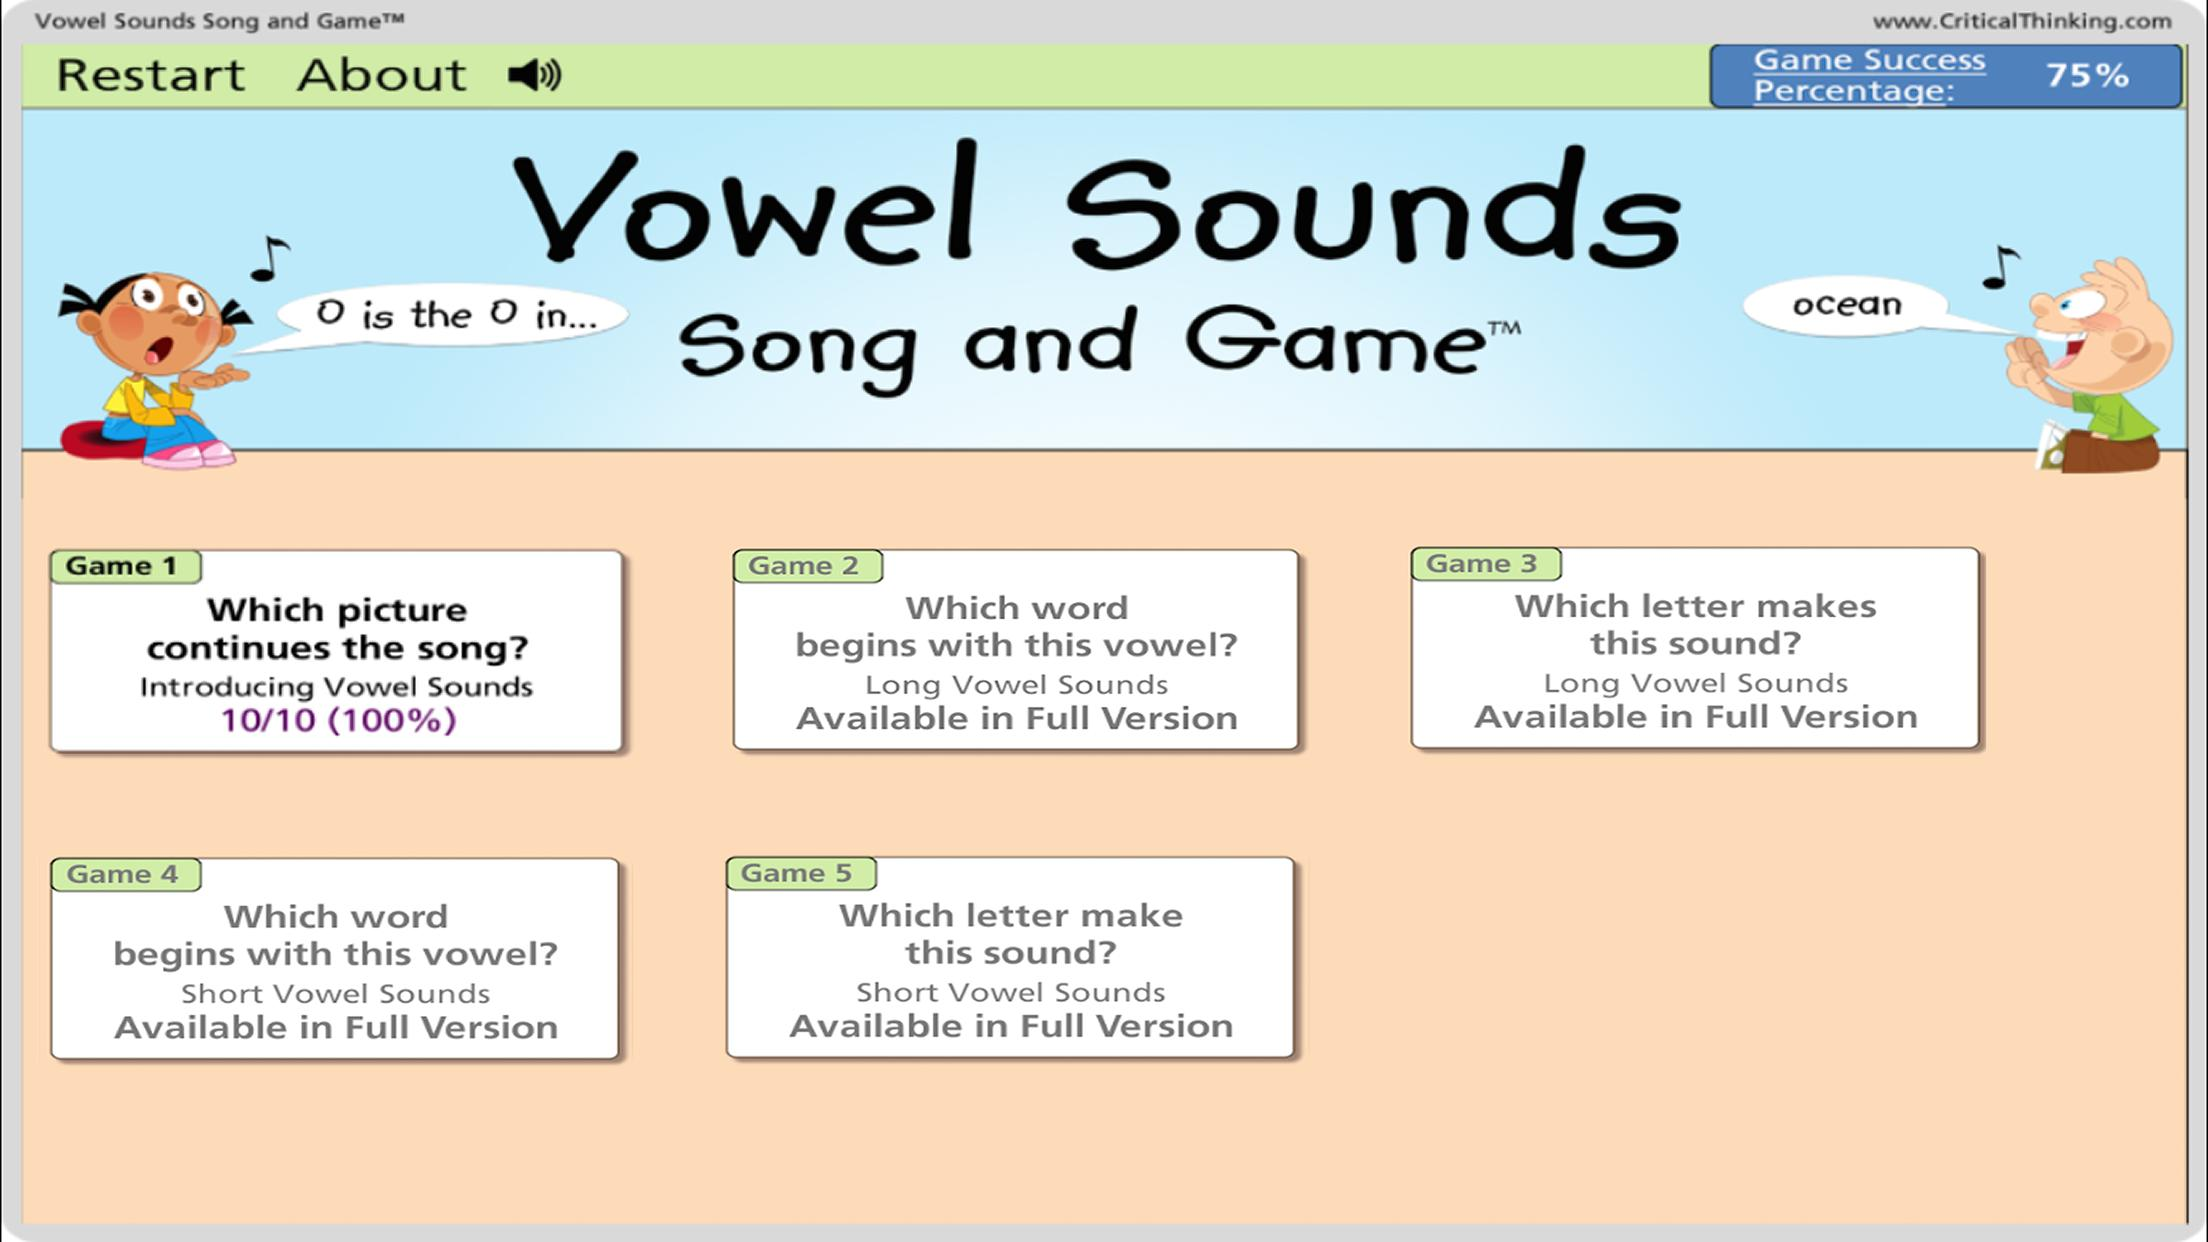 Vowel Sounds Song and Game™ (Lite) for Android - APK Download